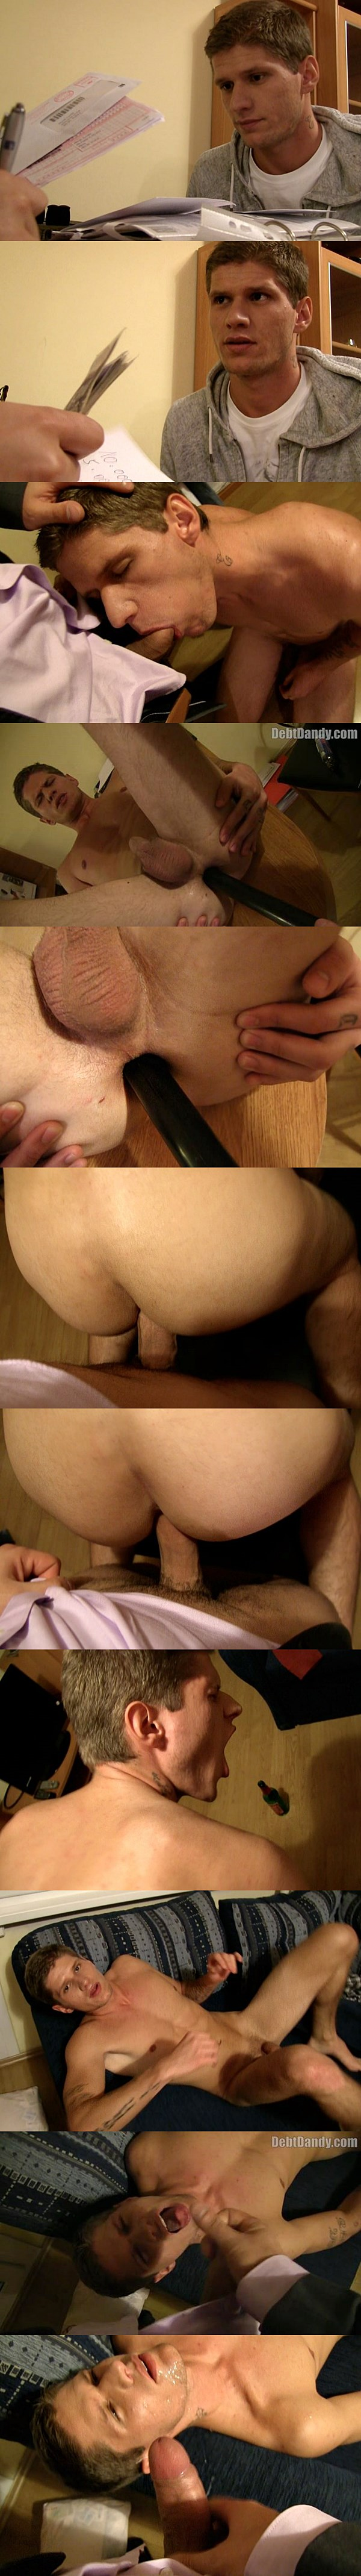 A handsome straight lad sucks dick and gets fucked bareback to pay the debts in Episode 03 at Debtdandy 02